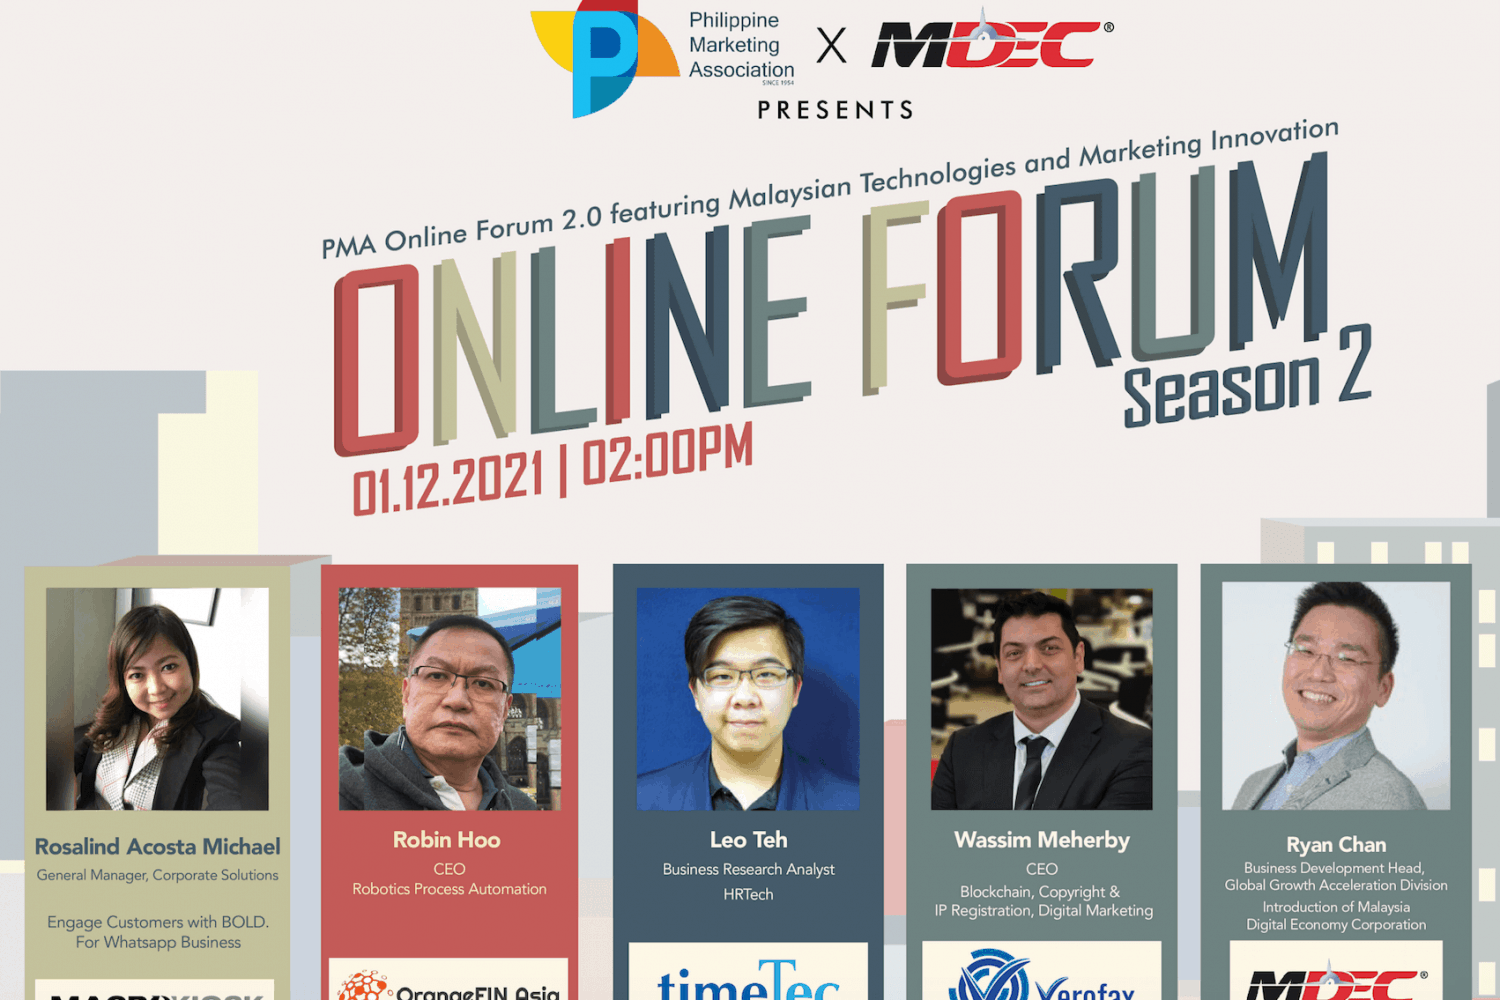 PMA Online Forum Season 2 in partnership with MDEC